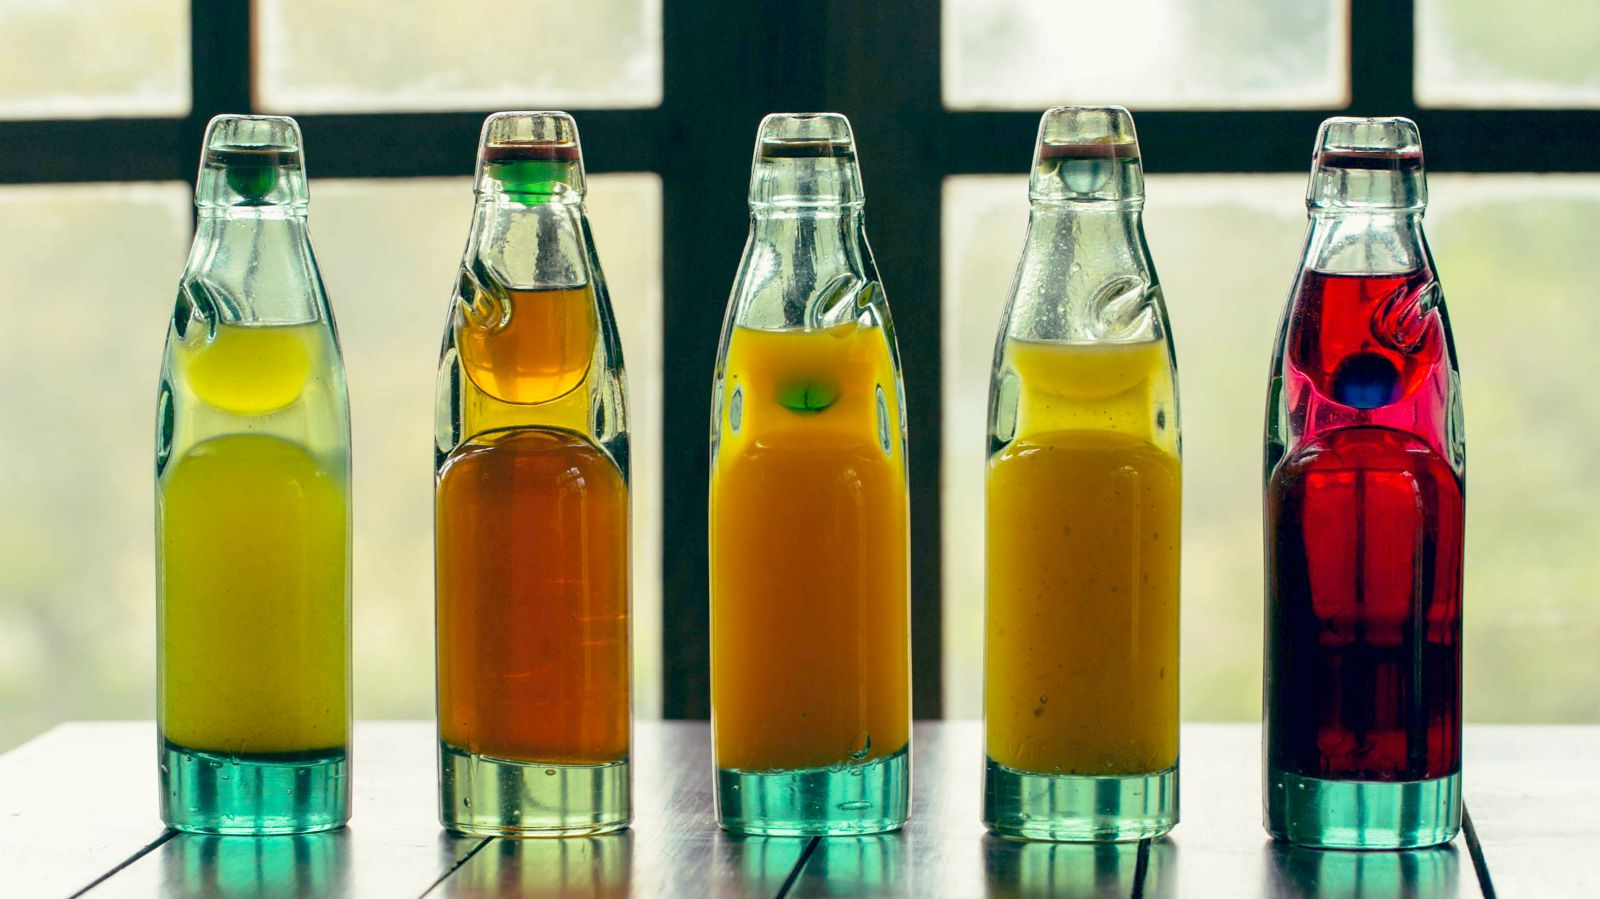 Mixologists in India are reviving traditional ingredients like aam panna and kaanji photo